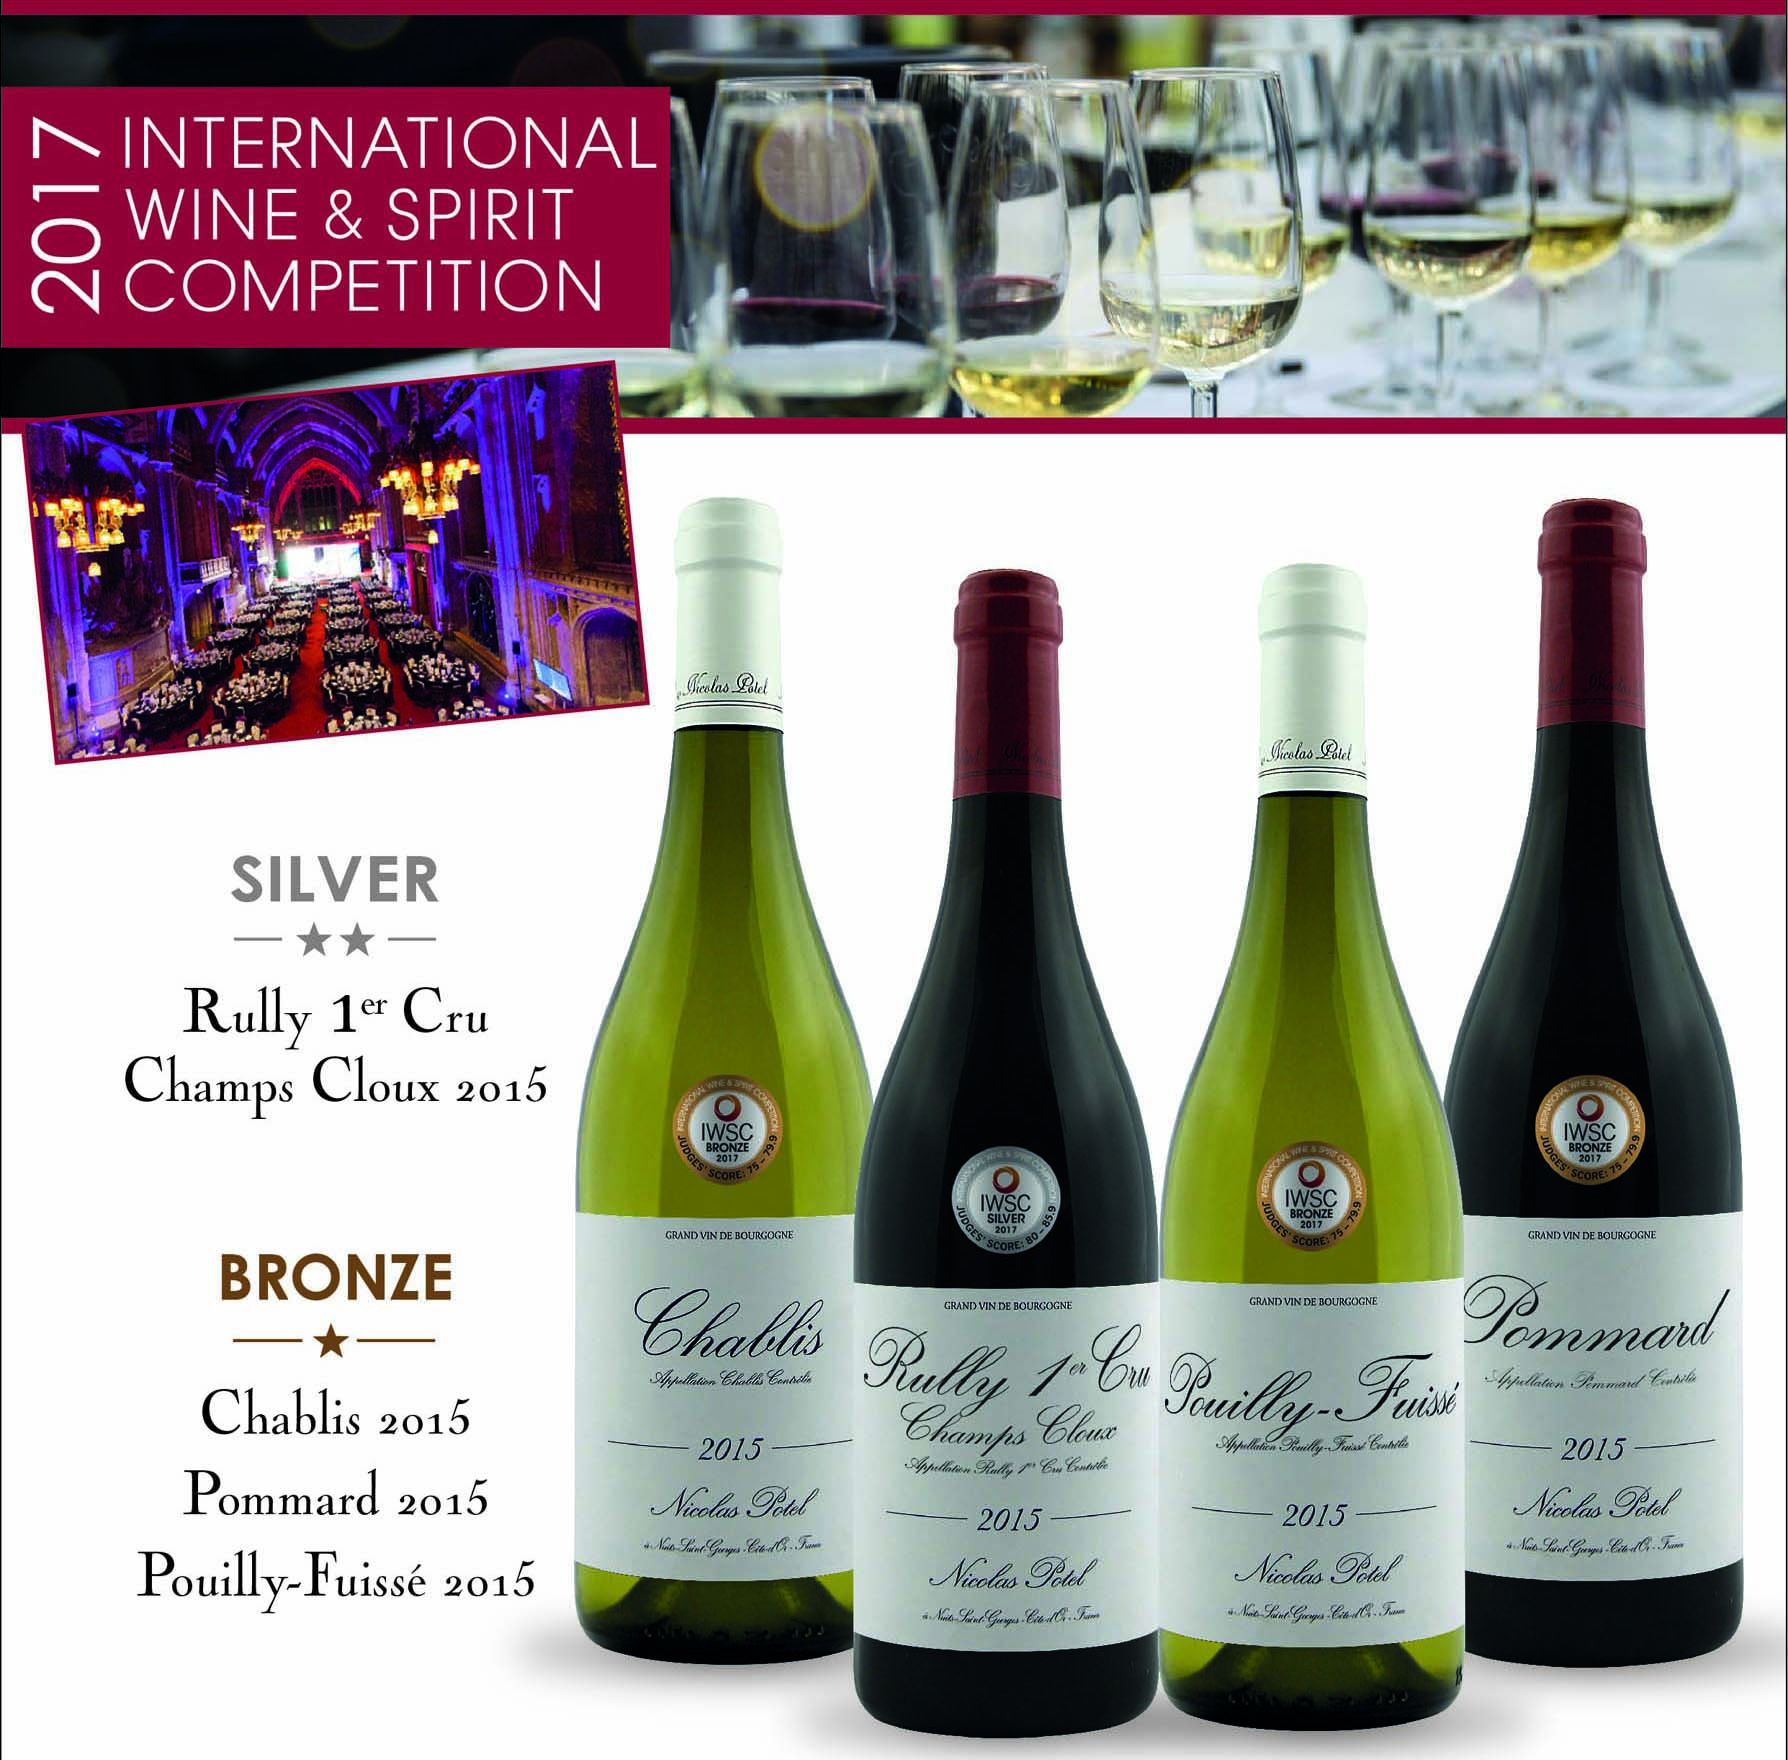 4 medals for Maison Nicolas Potel at the IWSC 2017